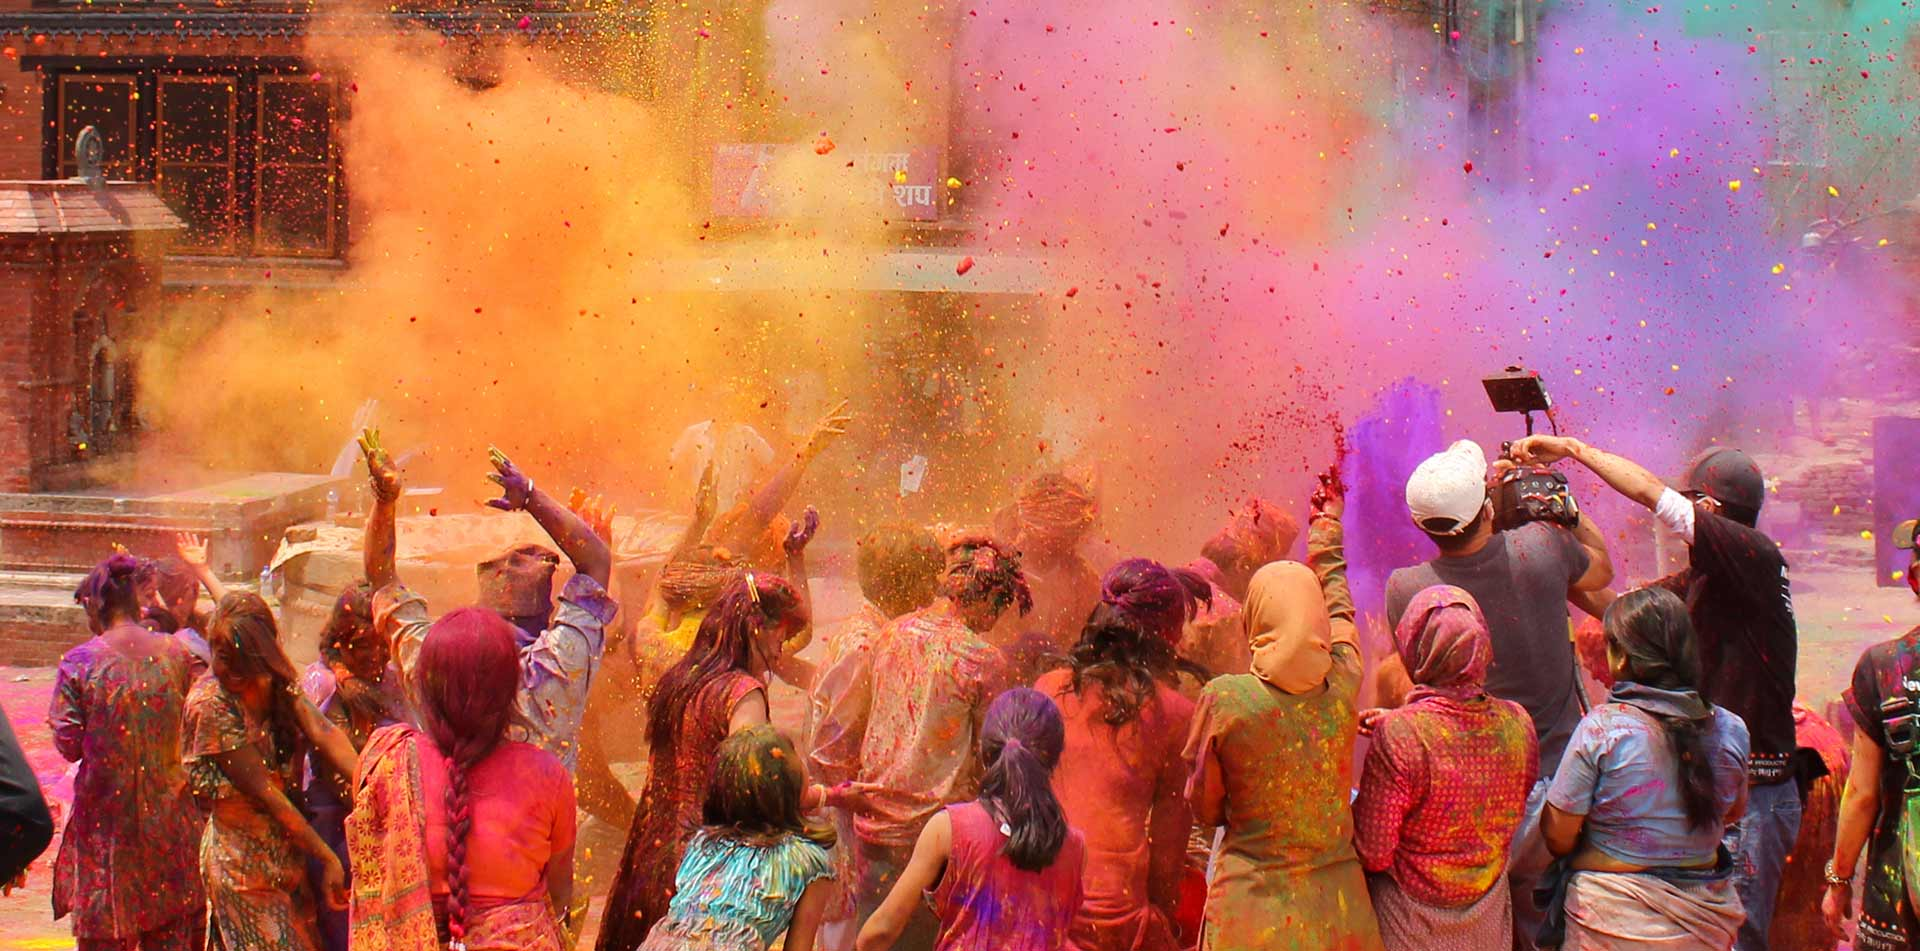 Asia India locals celebrating Holi Festival with colored powders - luxury vacation destinations